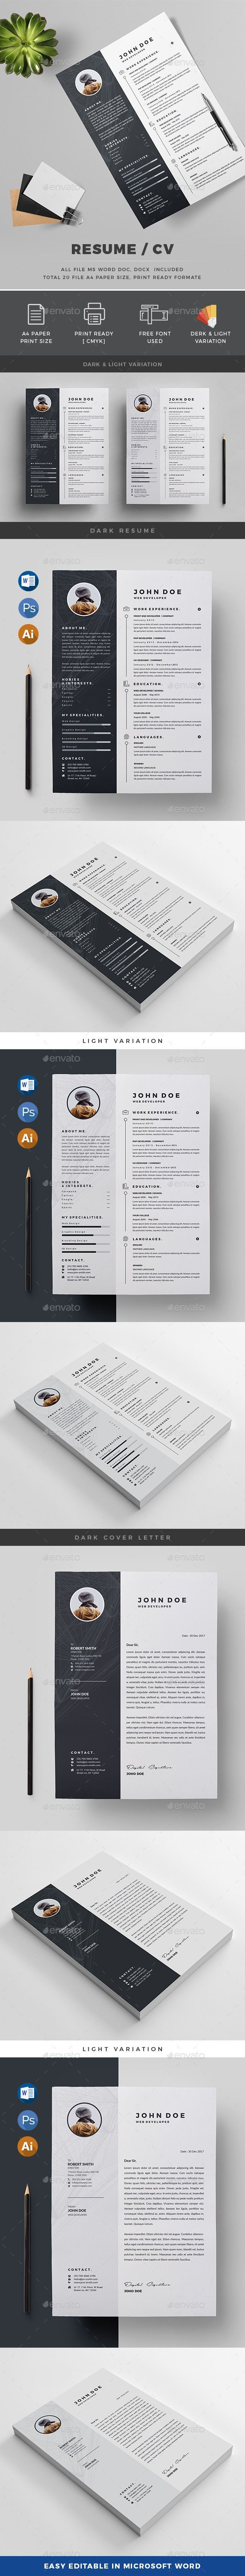 358 best Resume - Job Hunt images on Pinterest | Art base, Bull ...